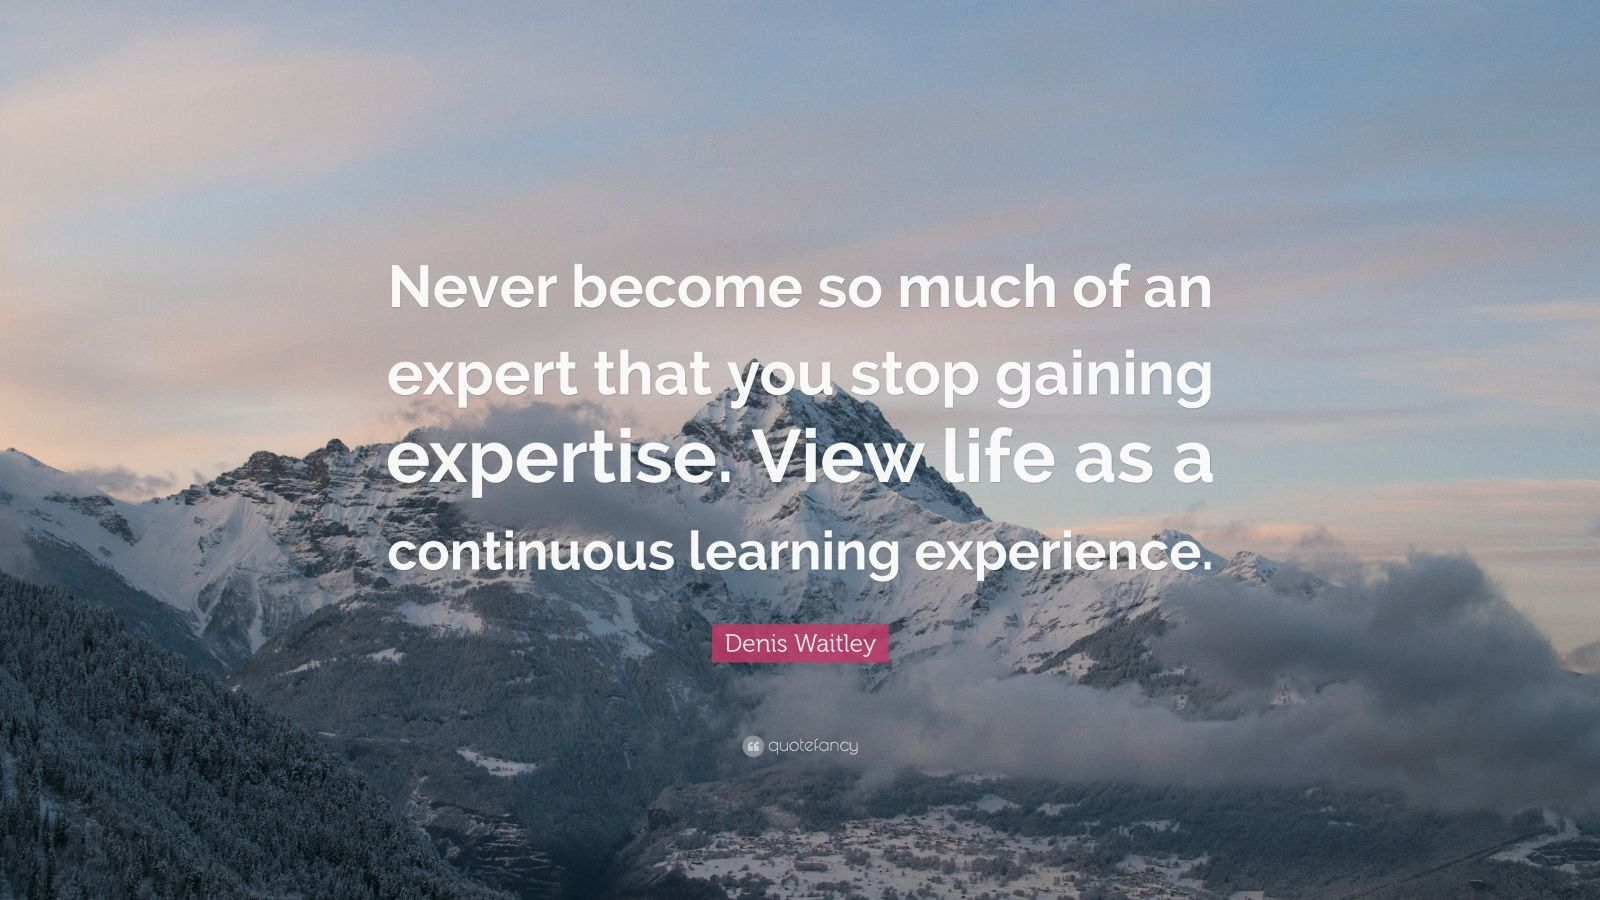 """Denis Waitley Quote: """"Never become so much of an expert that you stop gaining expertise. View life as a continuous learning experience."""""""